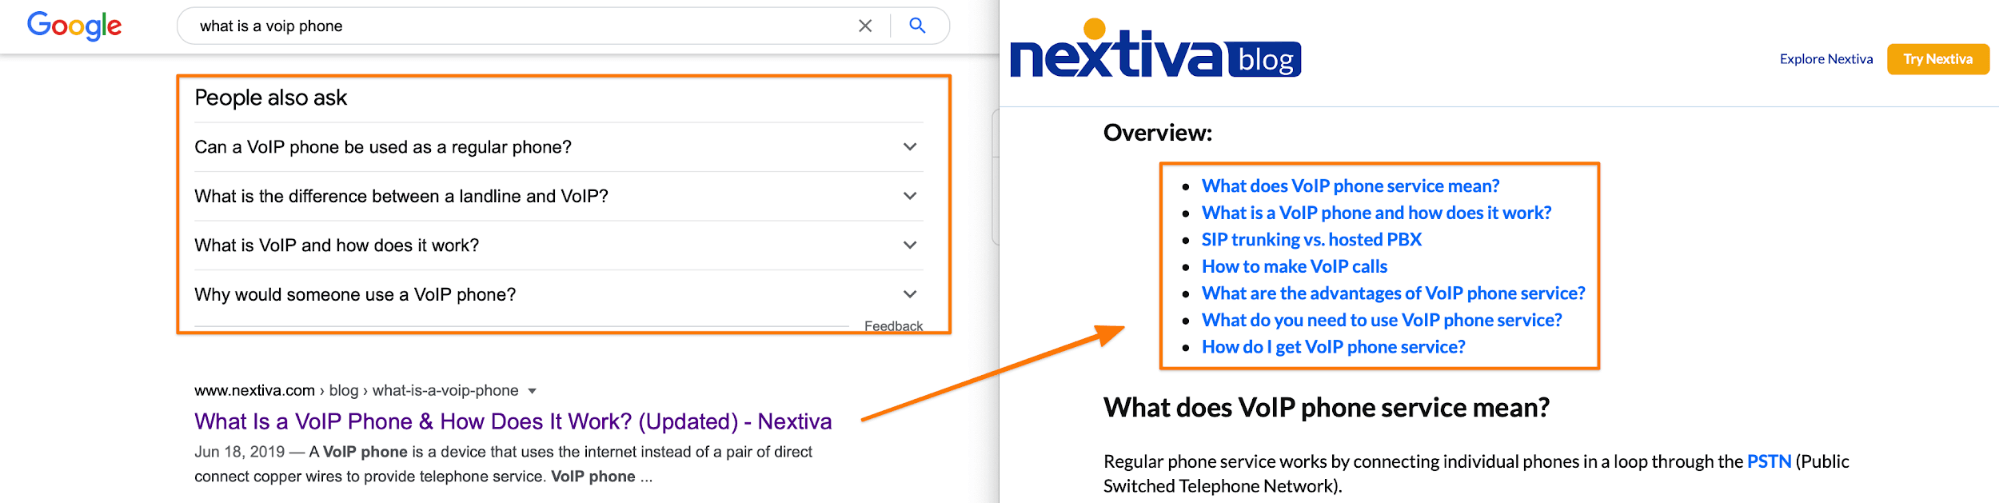 sample article by nextiva showing related questions